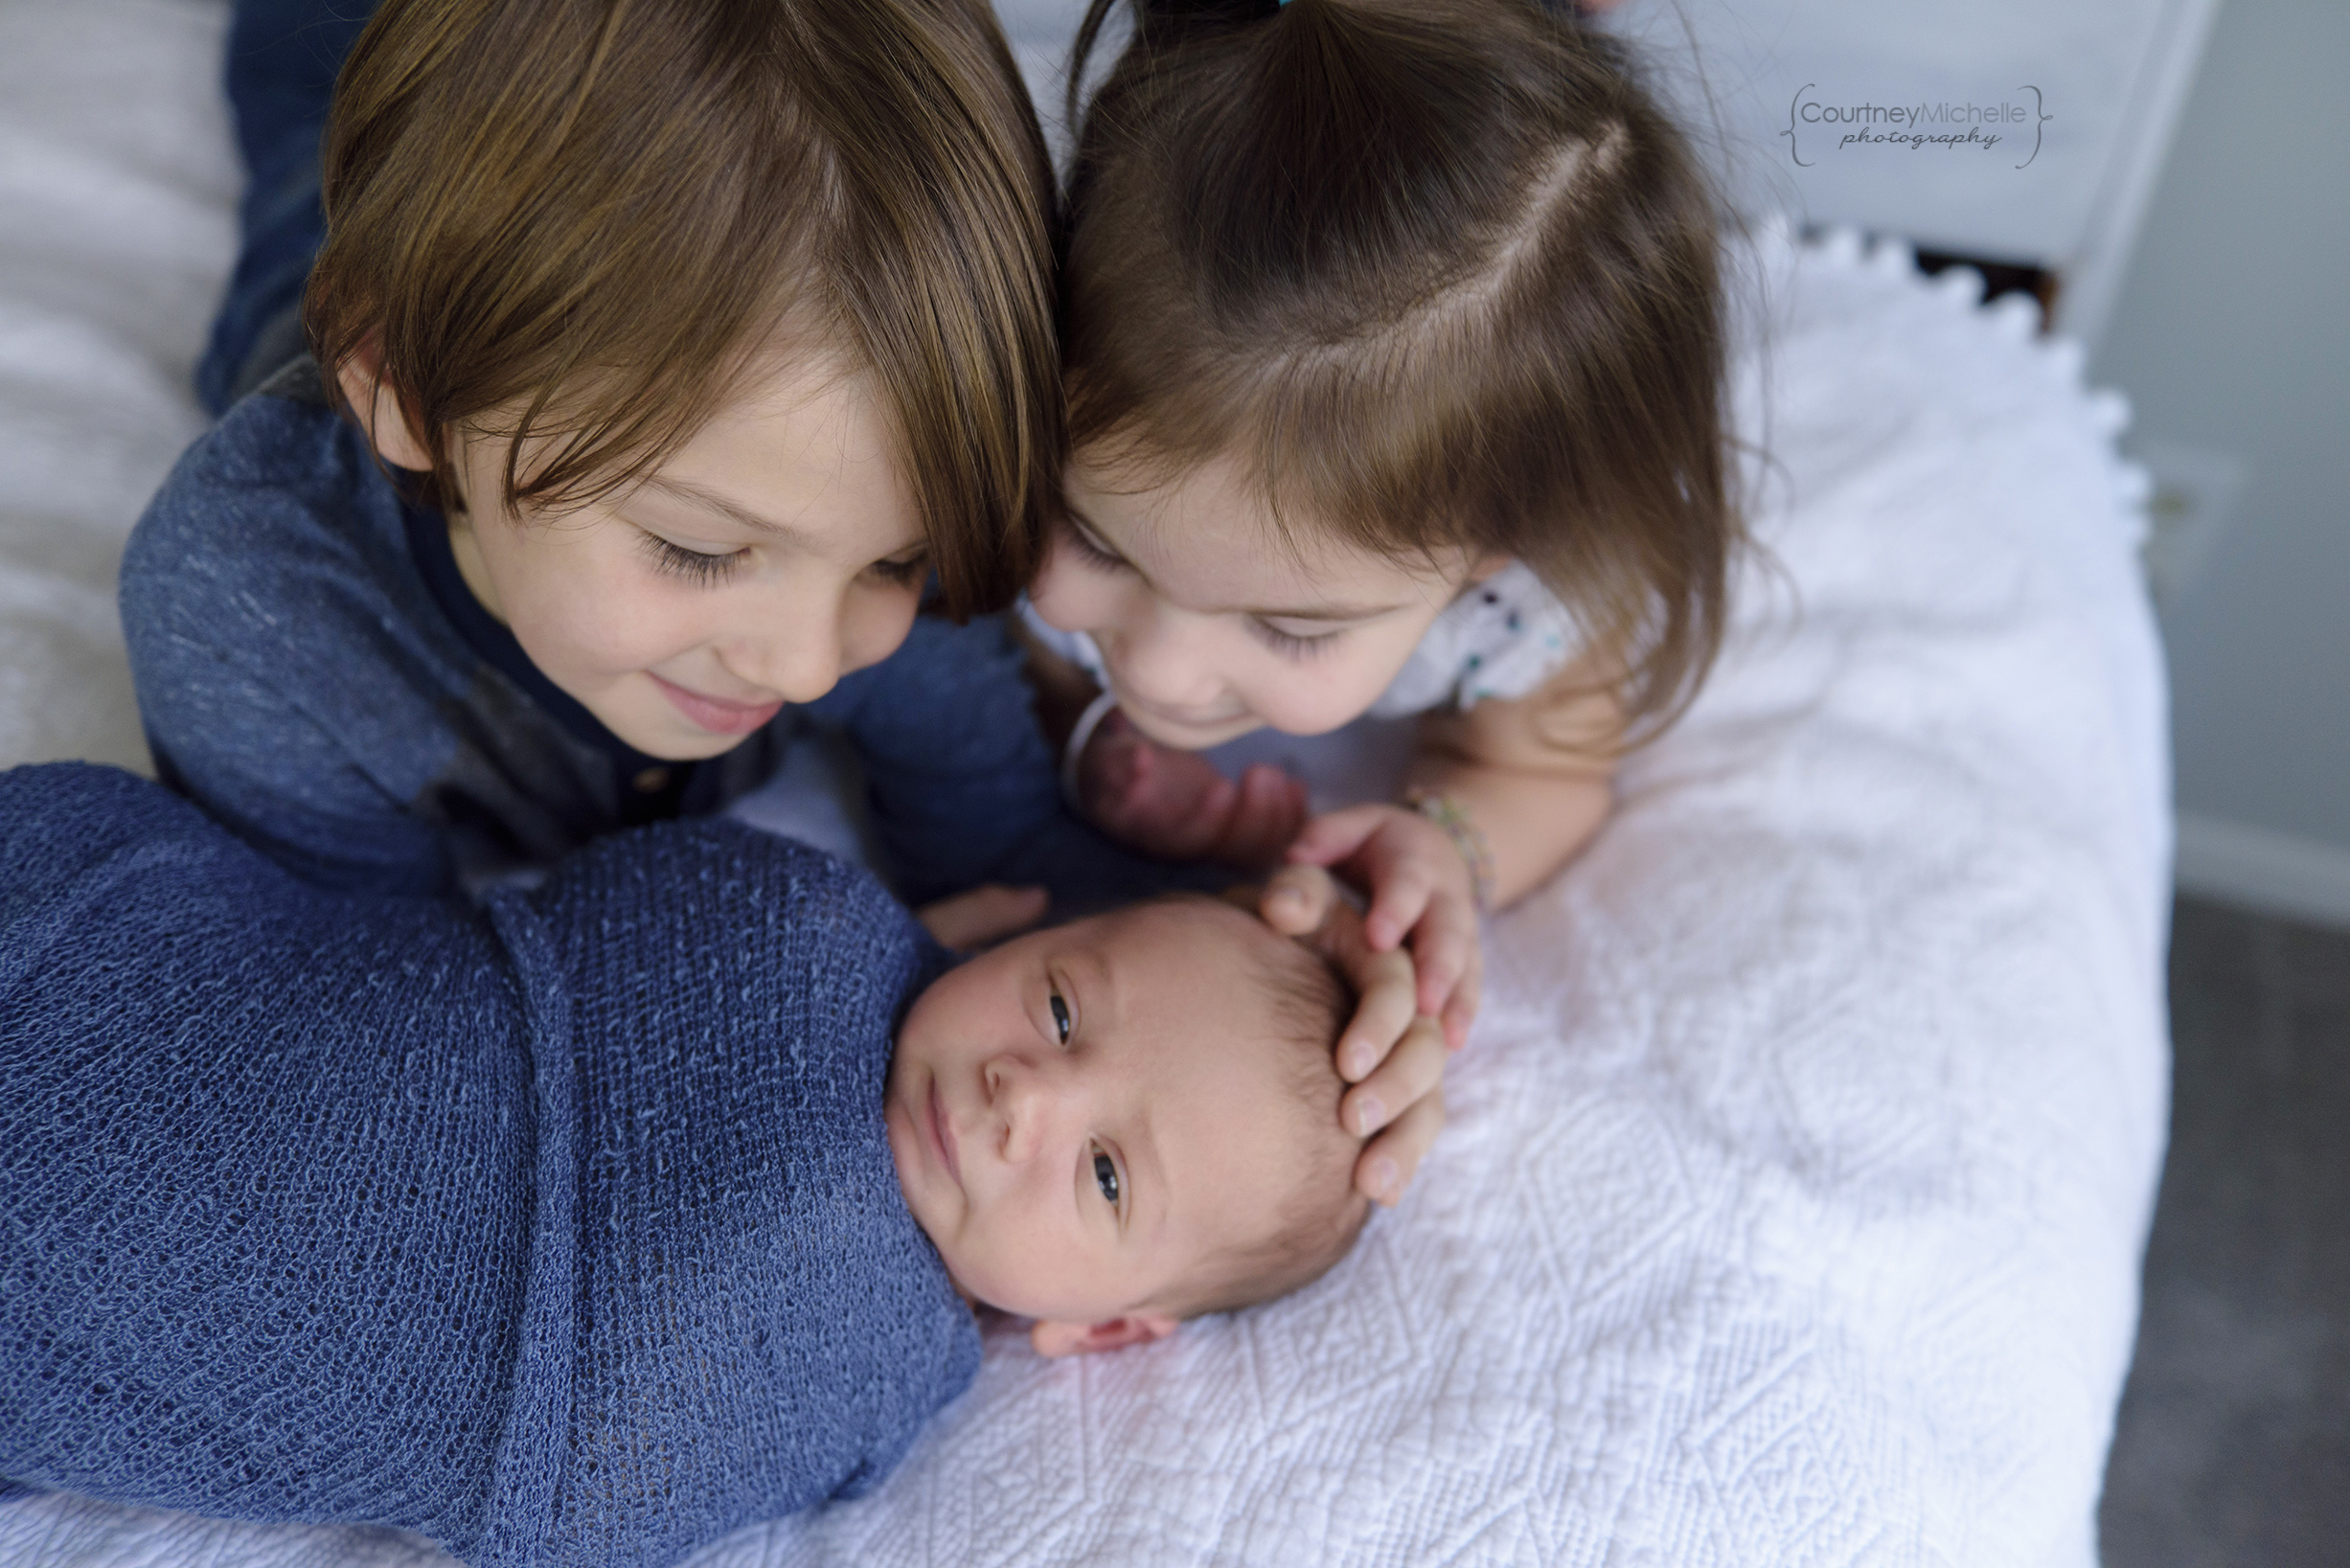 madison-newborn-photography-big-brother-and-big-sister-snuggling-with-baby©COPYRIGHTCMP-miller2018-5787edit.jpg